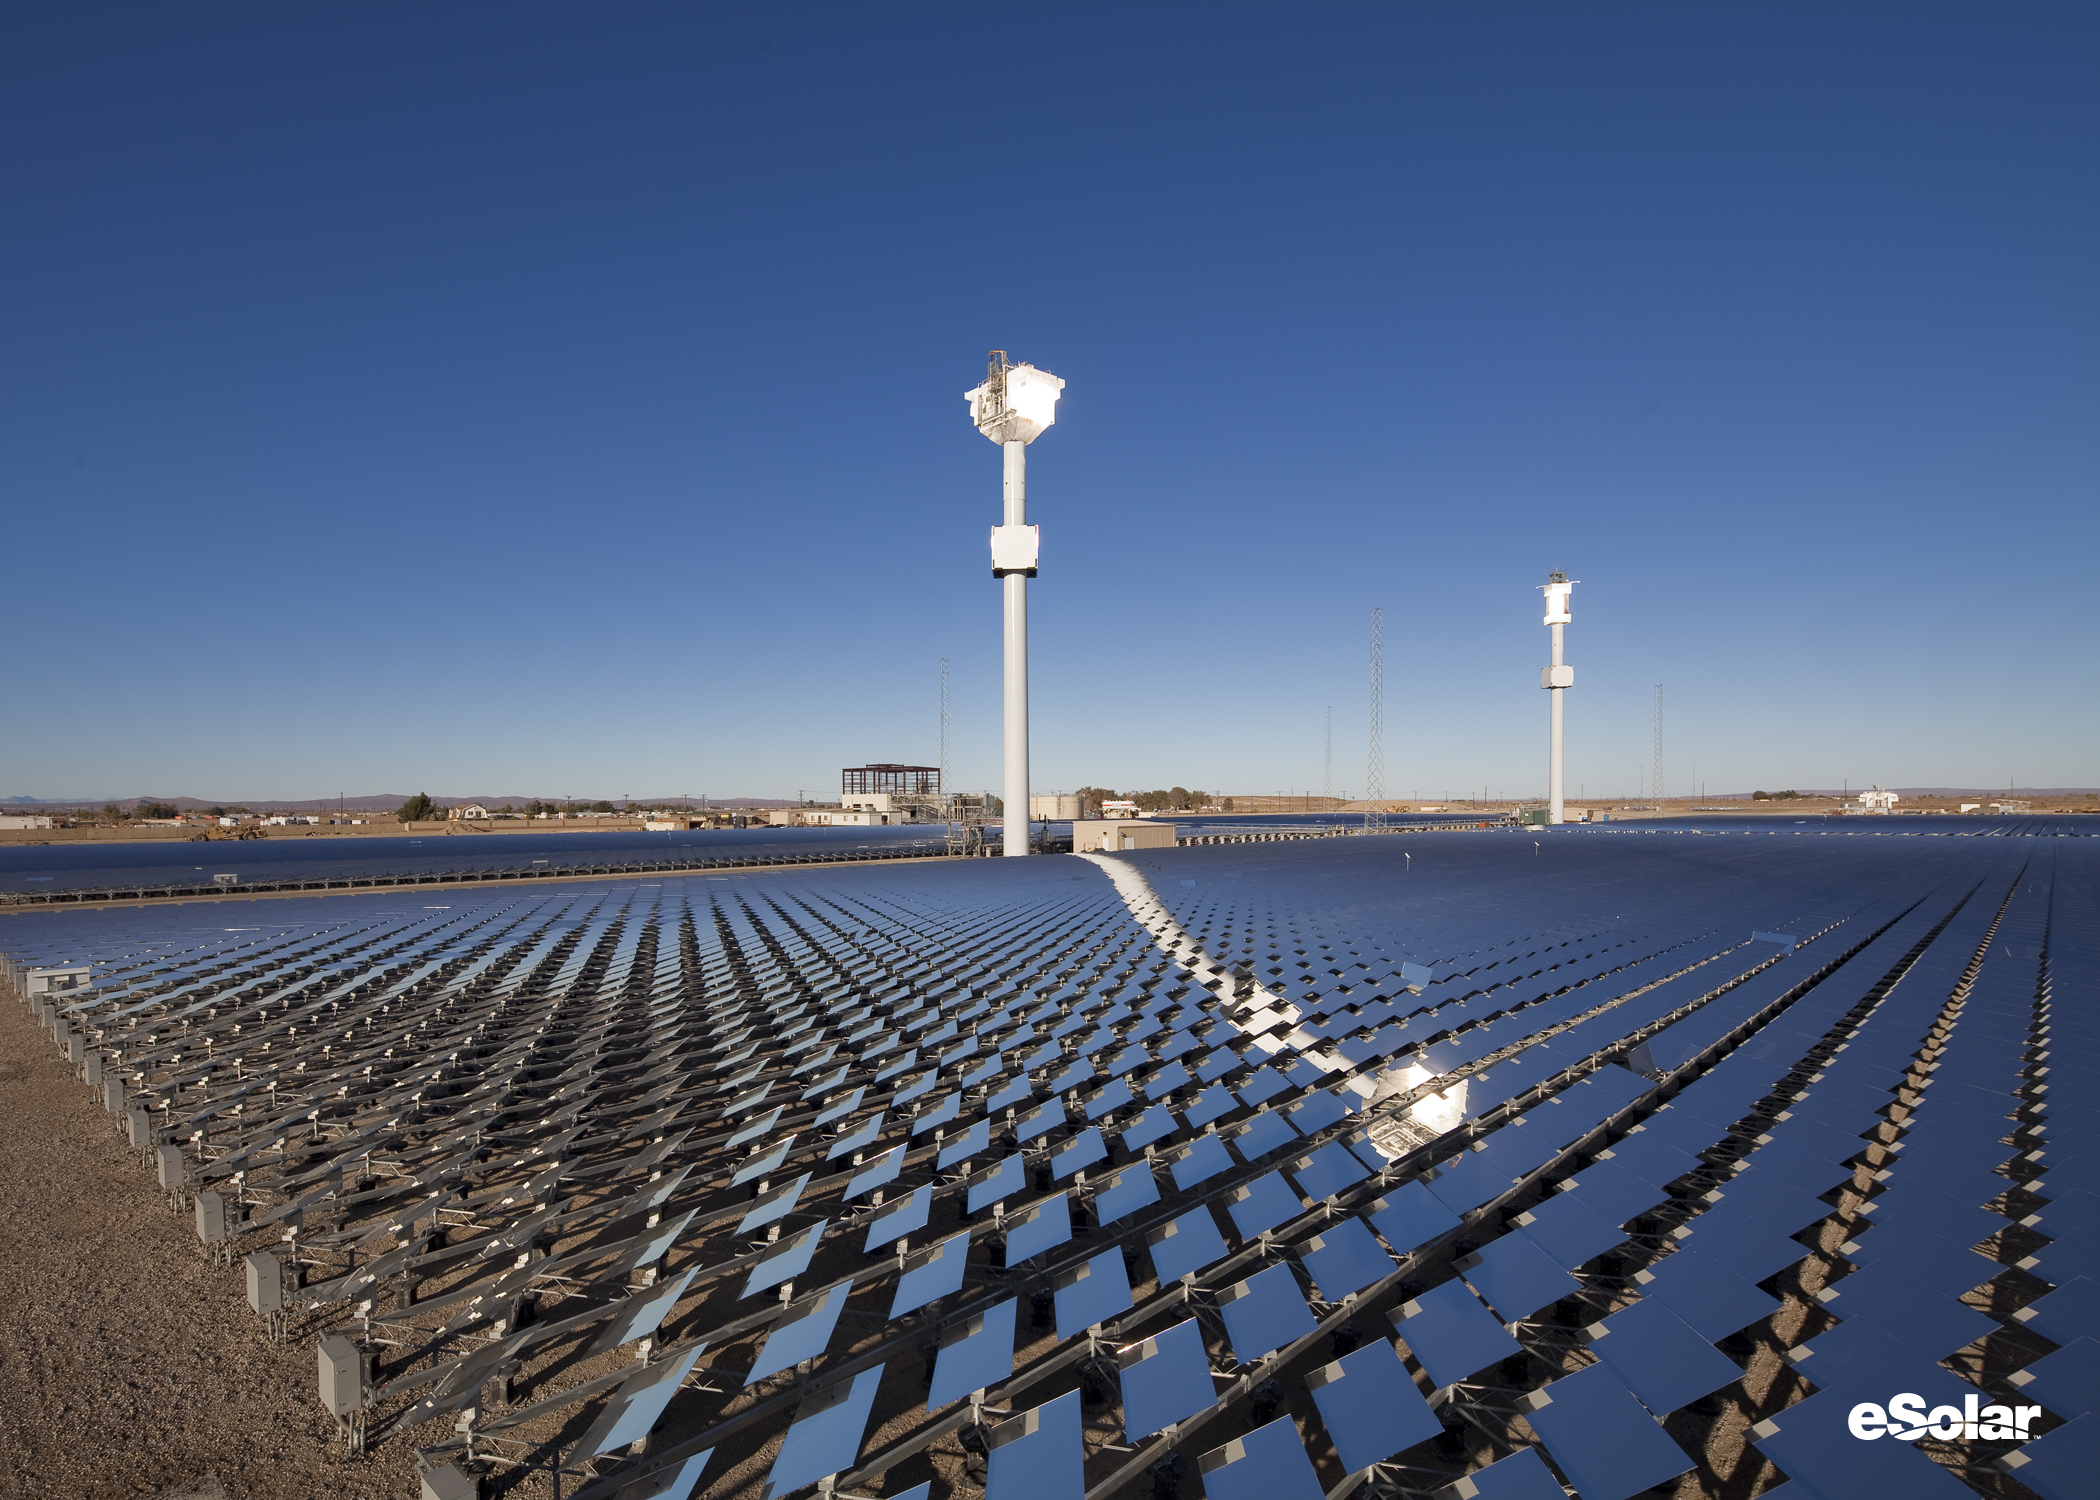 concentrated solar power thesis Concentrated solar power (also called concentrating solar power, concentrated solar thermal, and csp) systems generate solar power by using mirrors or lenses to.